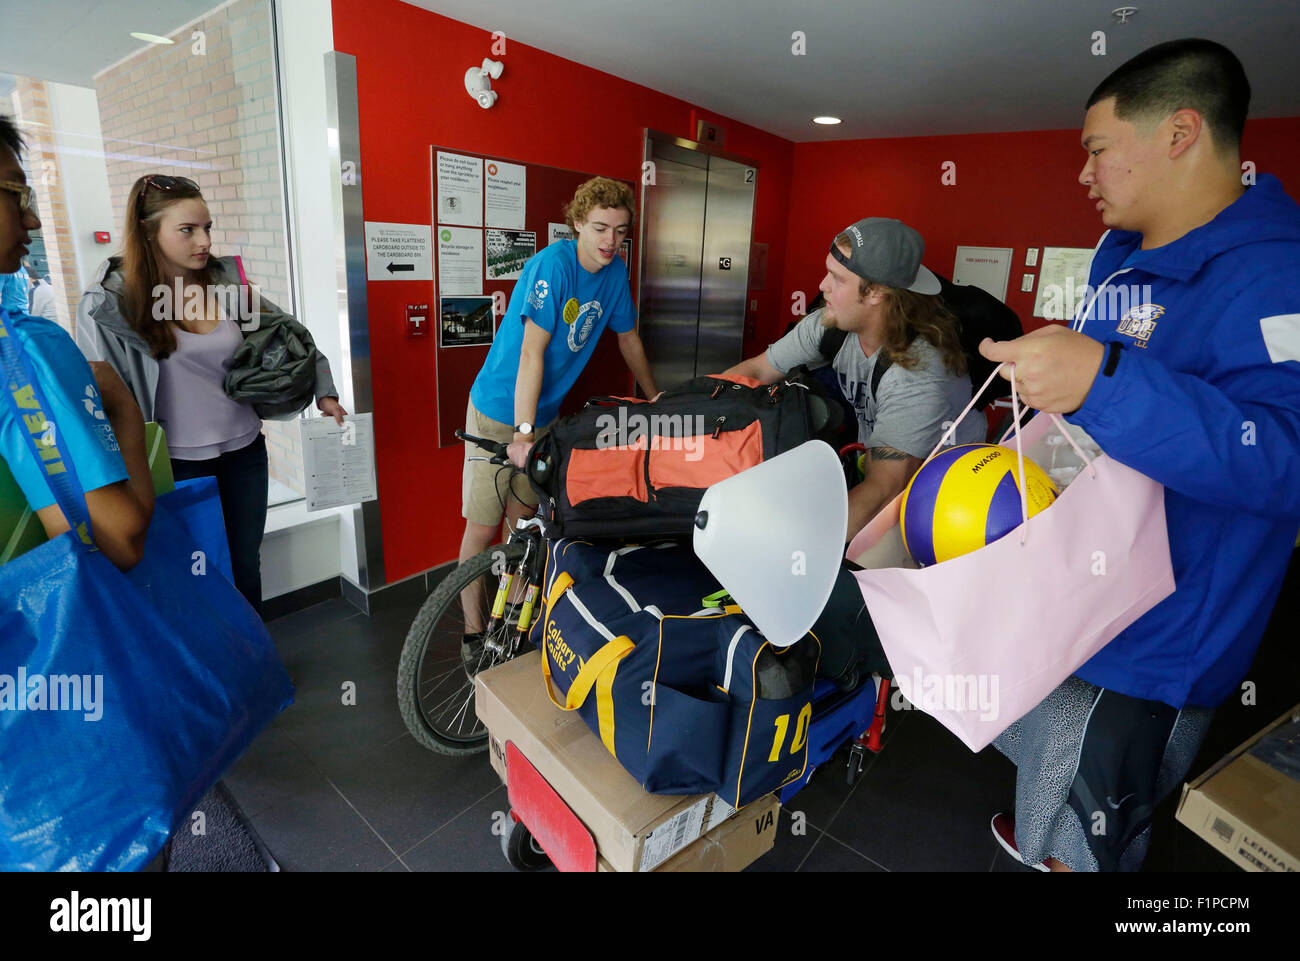 (150905) -- VANCOUVER, Sept. 5, 2015 (Xinhua) -- University students wait for the lift with luggages inside a campus - Stock Image